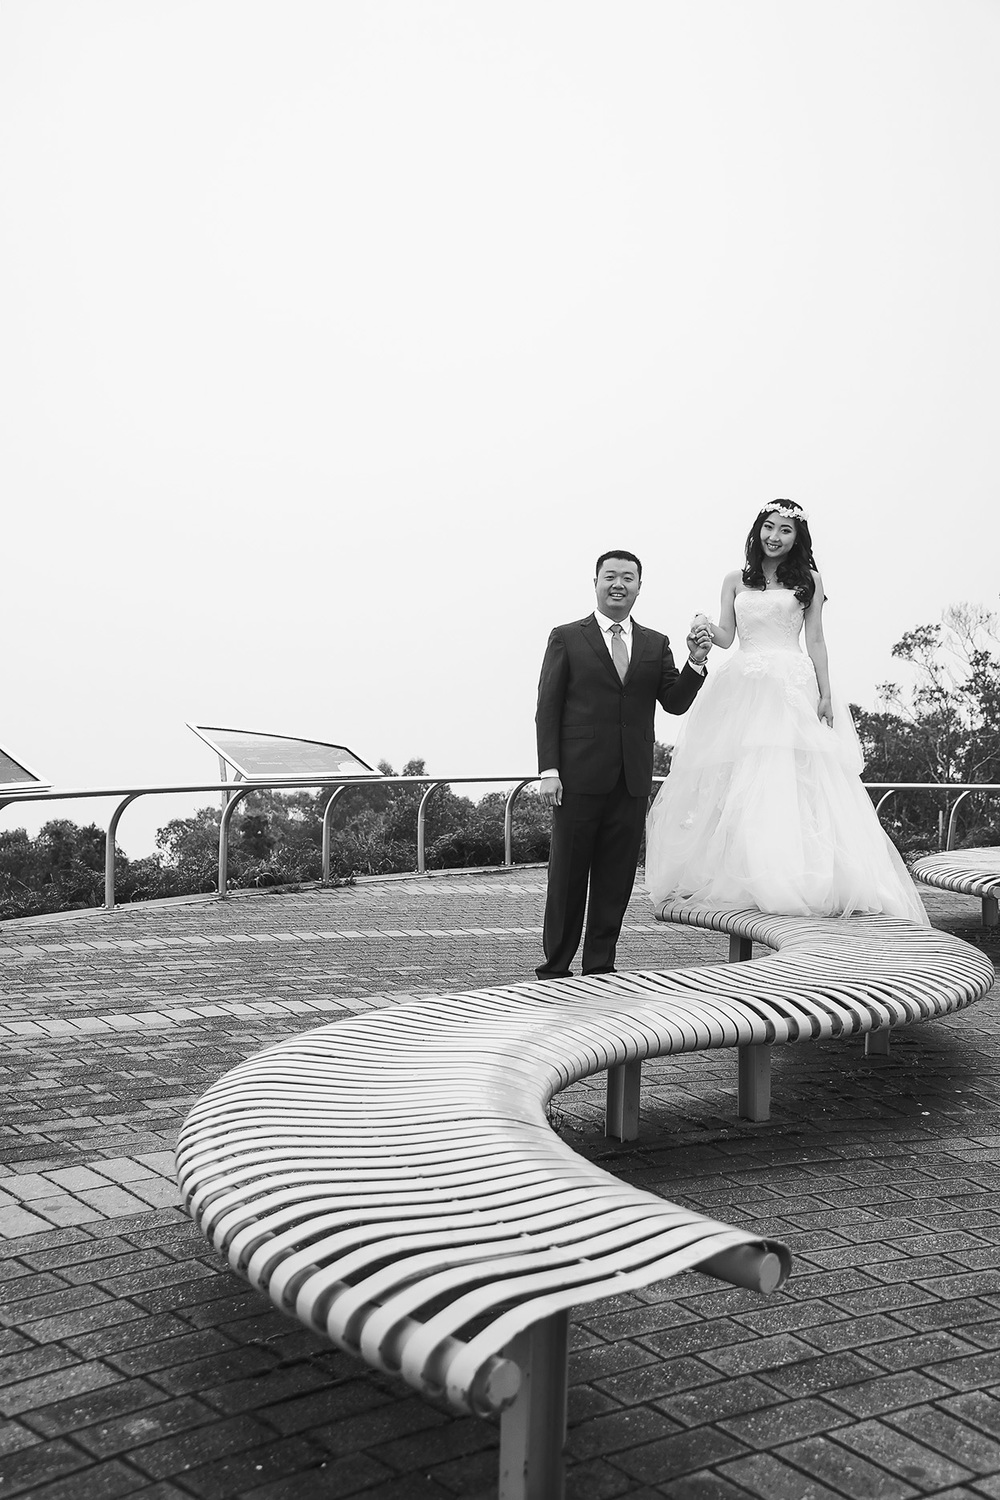 Artistic Black and White Wedding Photo 3